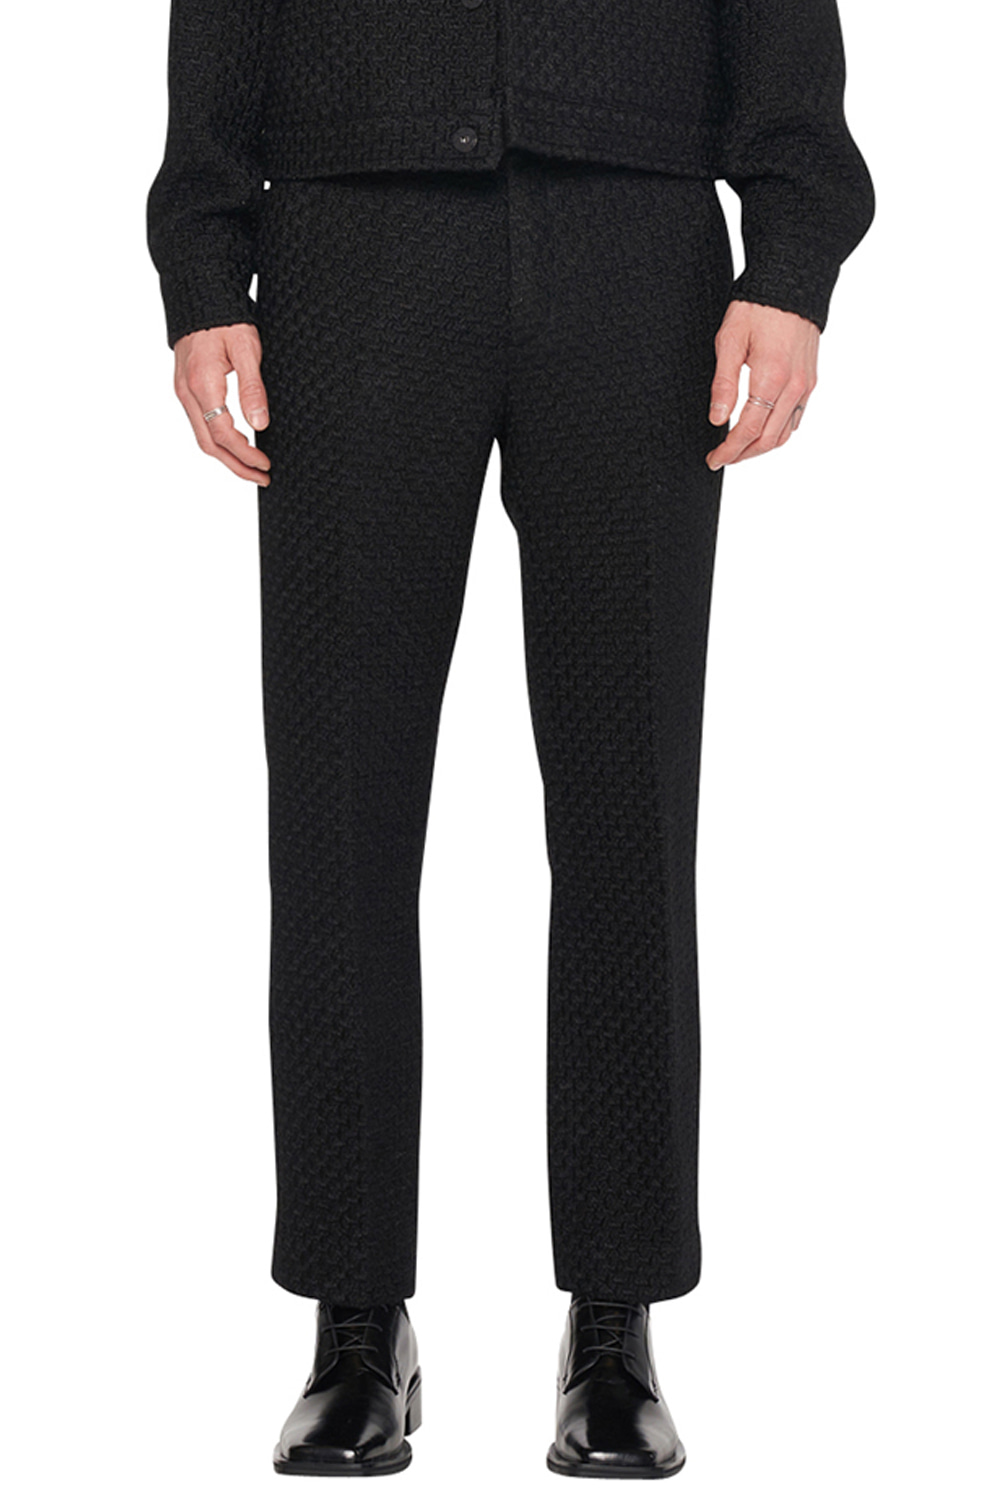 BLACK TWEED PANTS